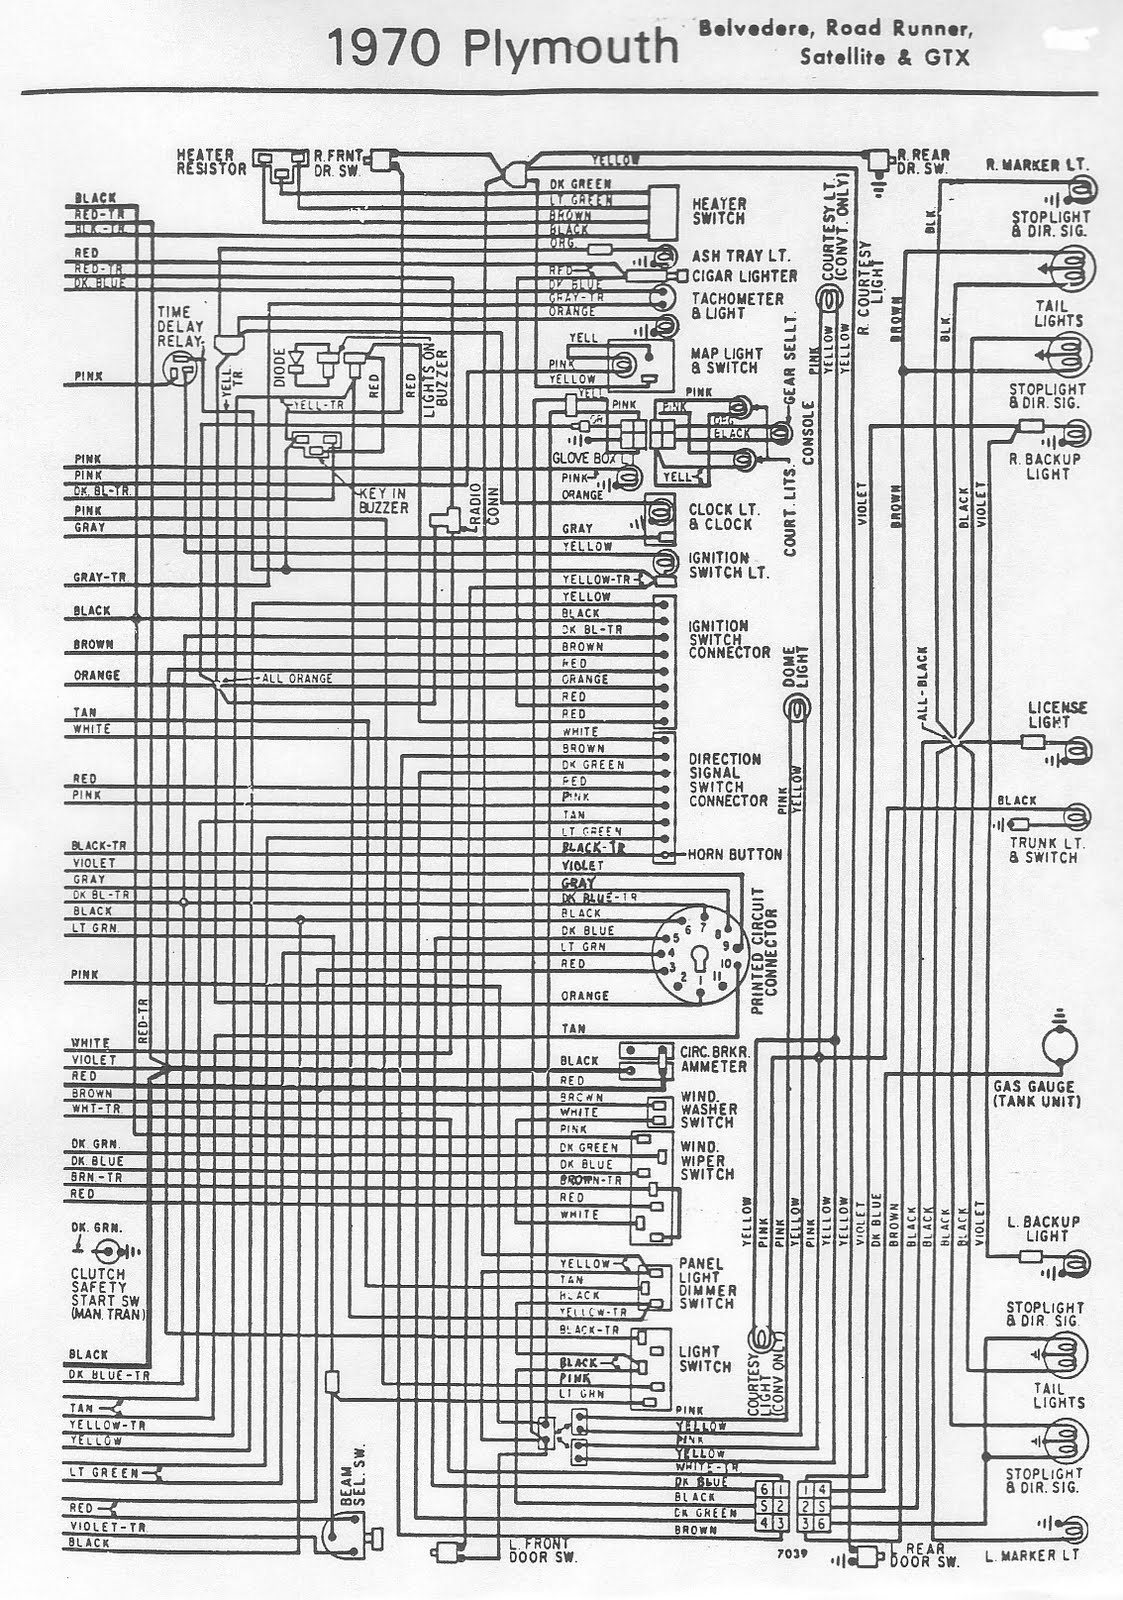 1970 plymouth gtx wiring diagram free download wiring diagrams 1970 plymouth gtx wiring diagram free download wiring diagrams schematics sciox Image collections